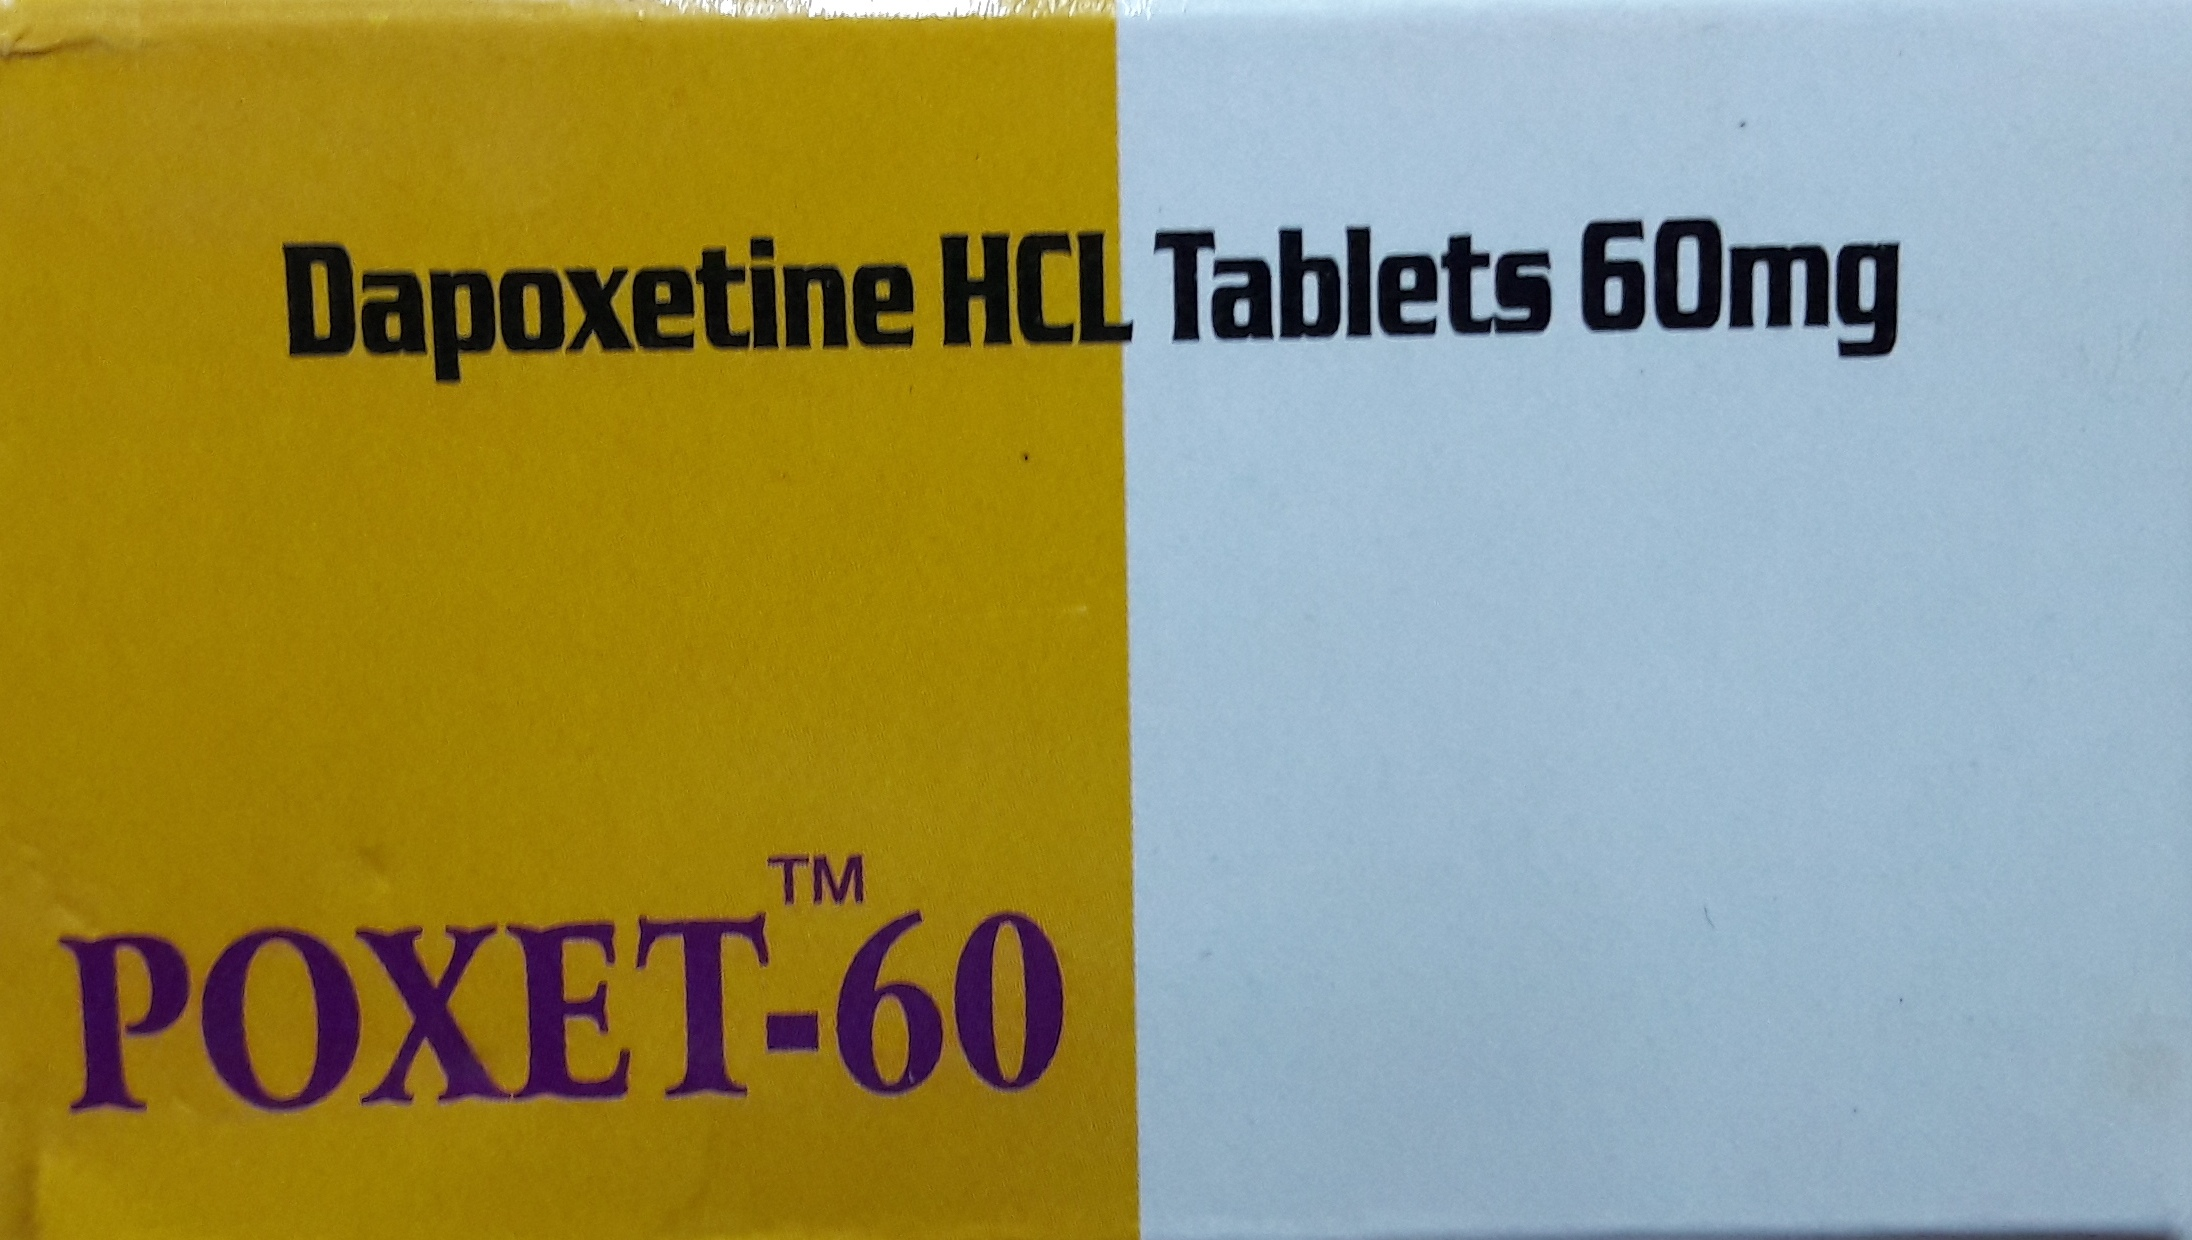 POXET 60 (DAPOXETINE HCL) TABLETS